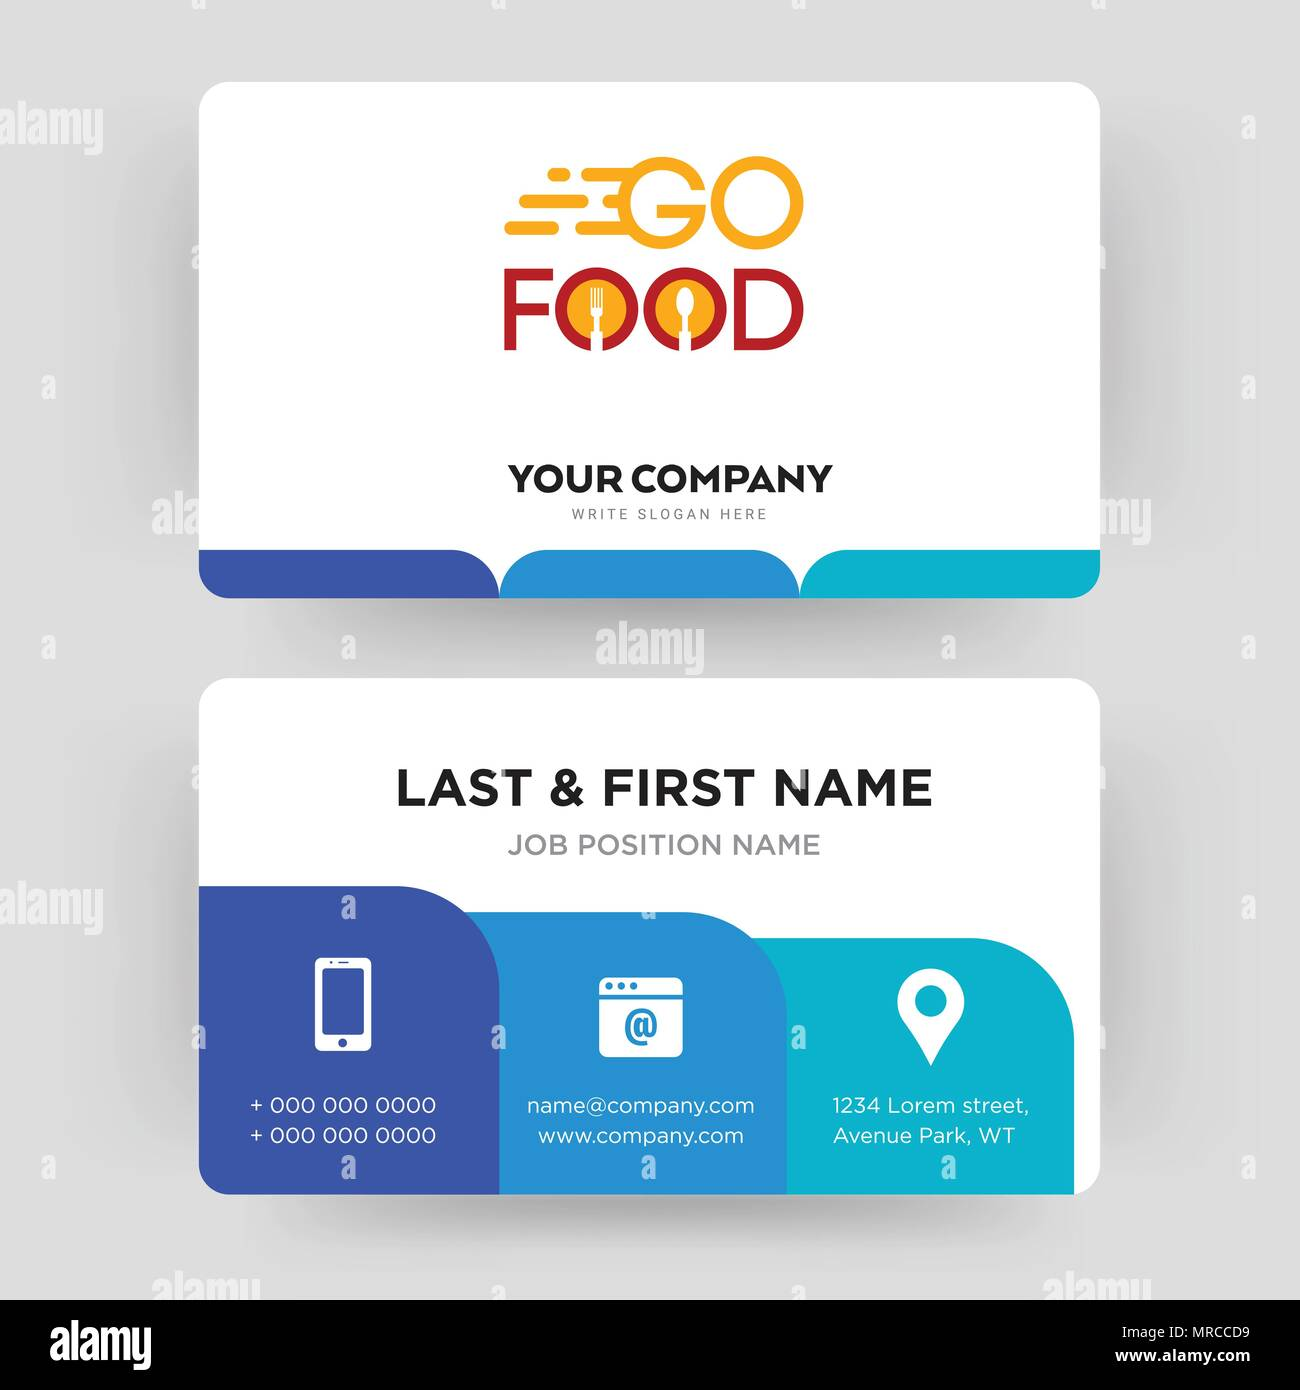 go food business card design template visiting for your company